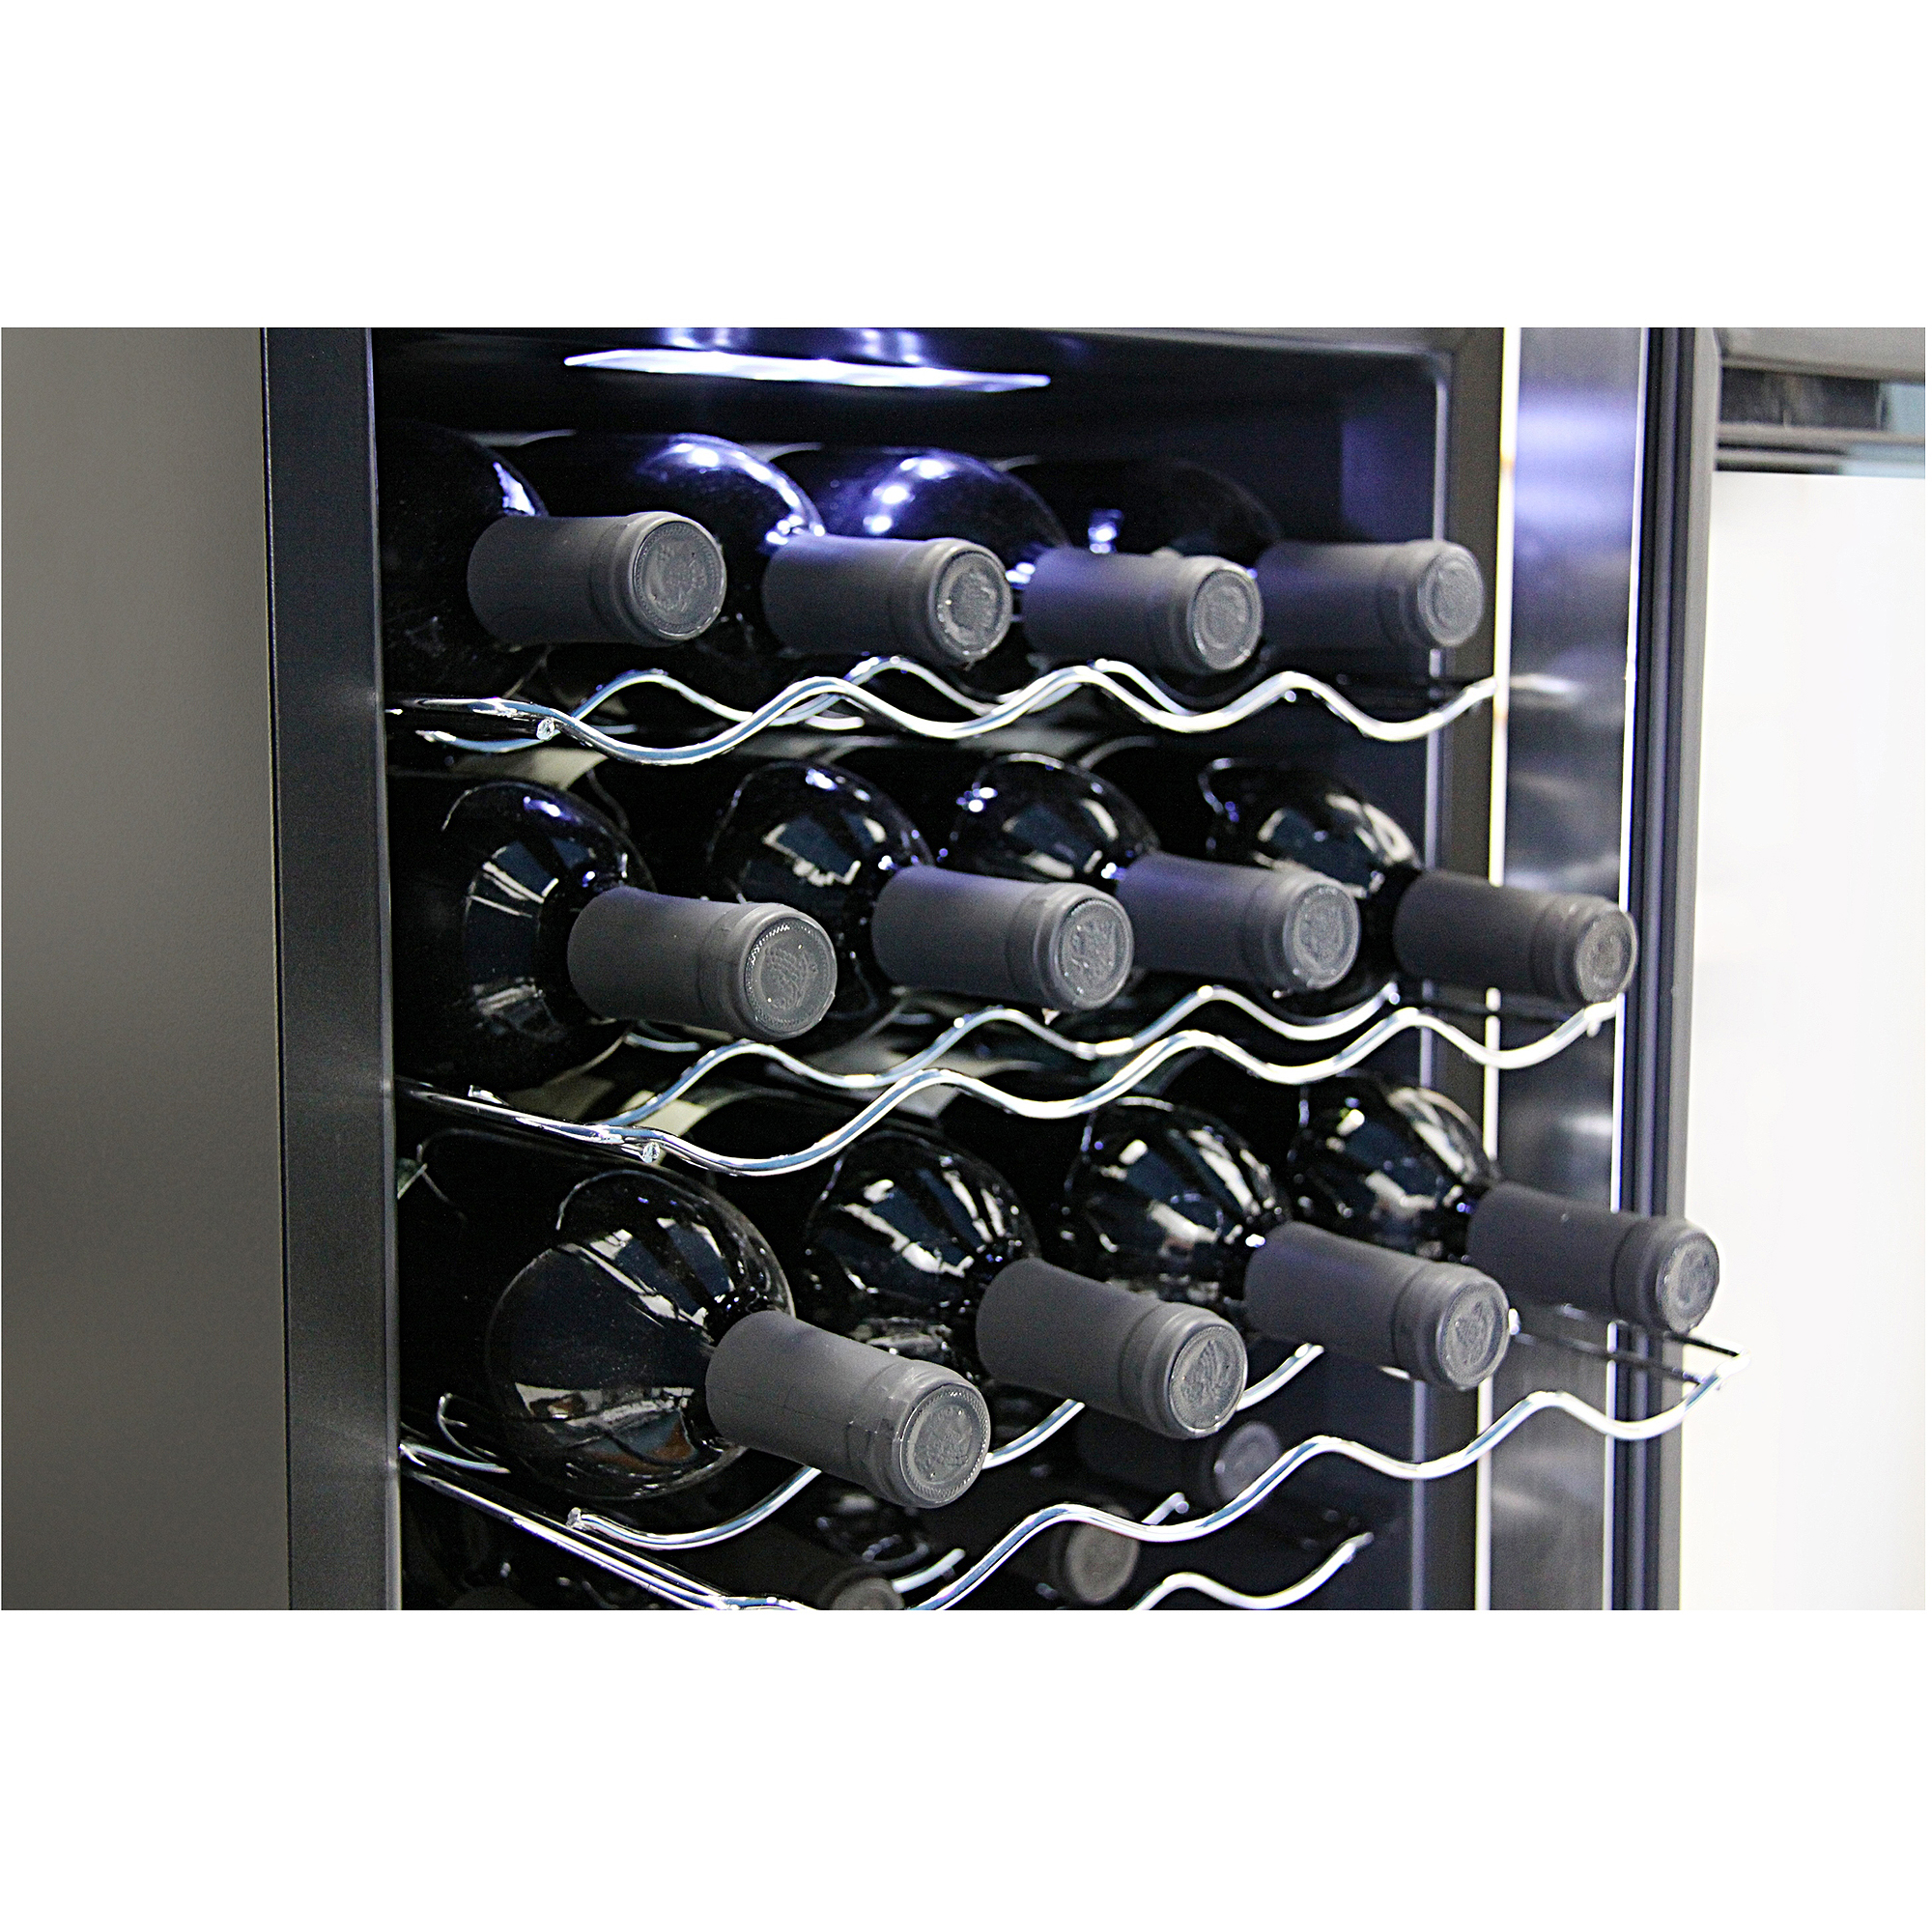 Whynter 20-Bottle Thermoelectric Wine Cooler, Black